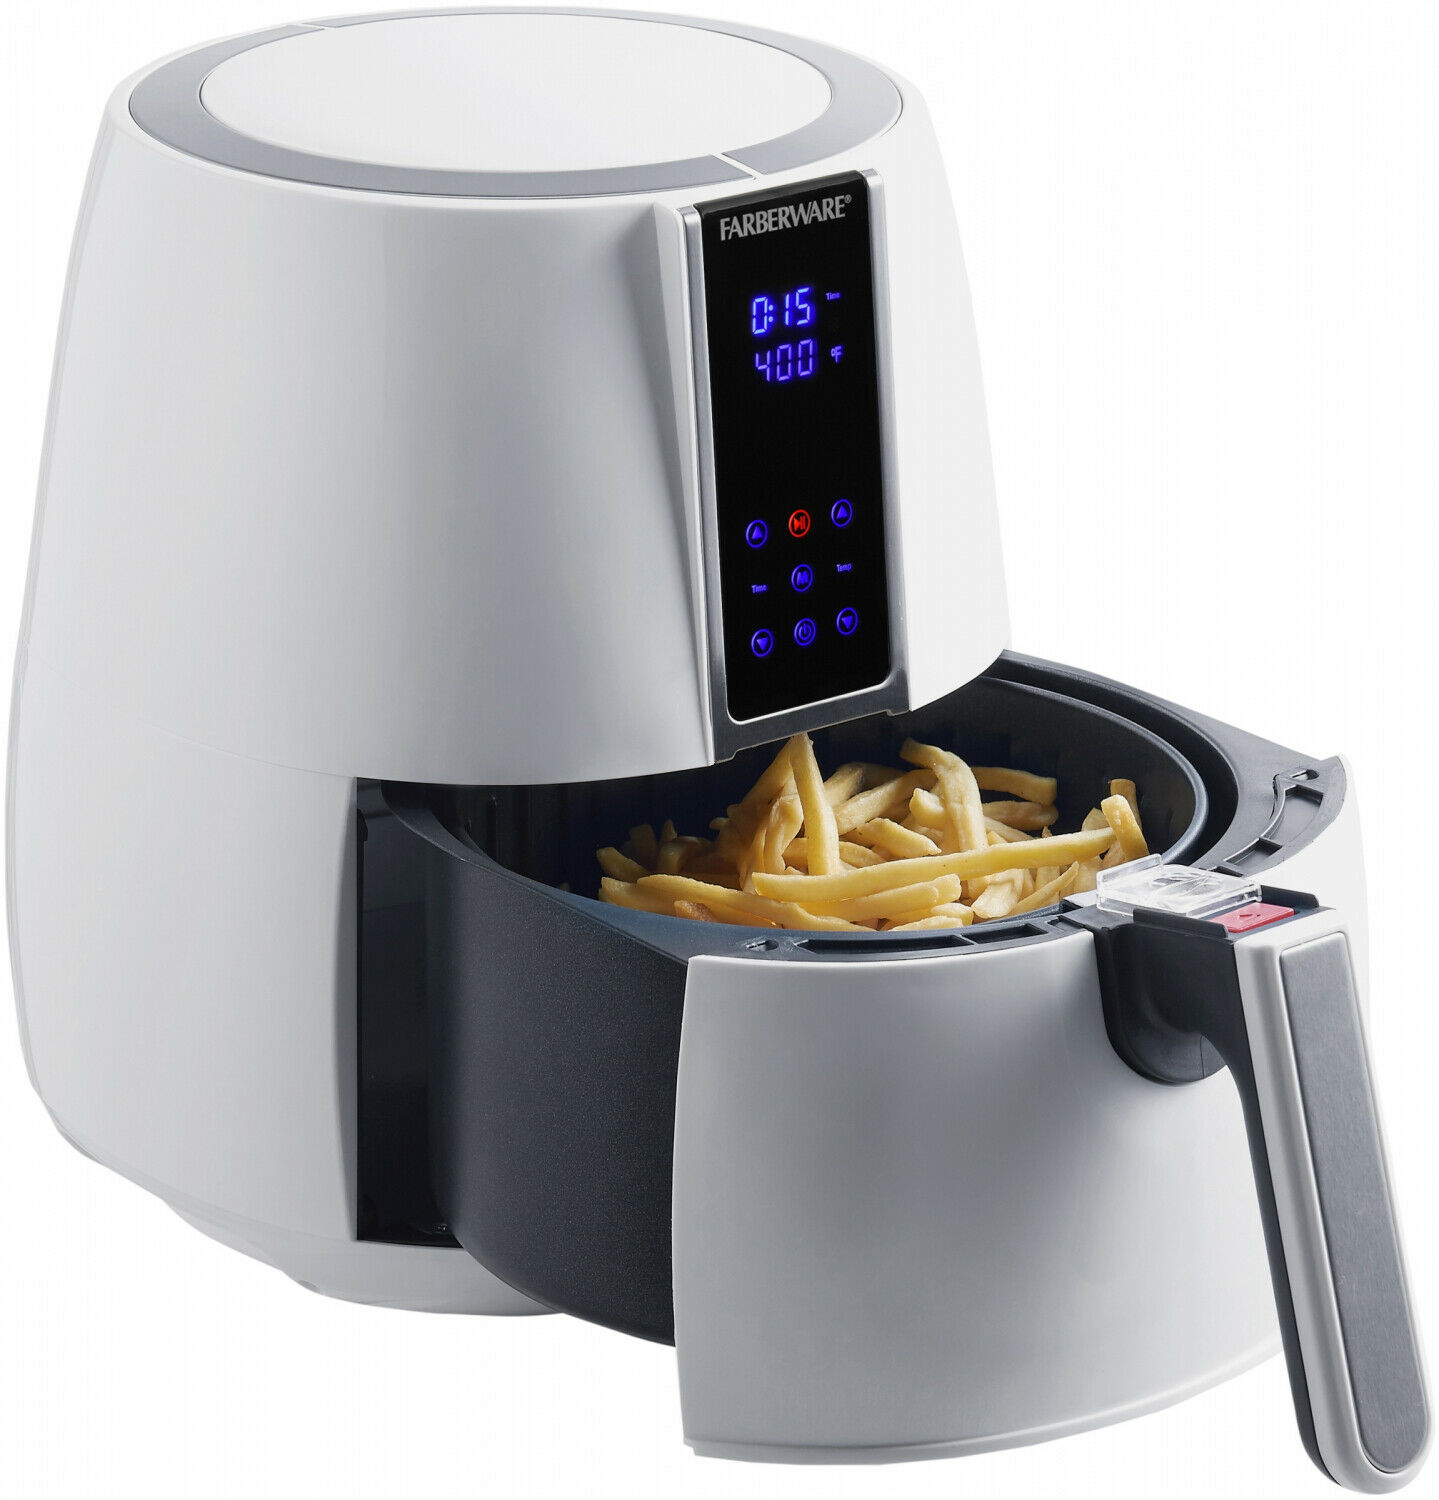 Couleurrware Healthier Alternative Fryer 3.2 - quart digital pétrole moins Friteuse L Blanc